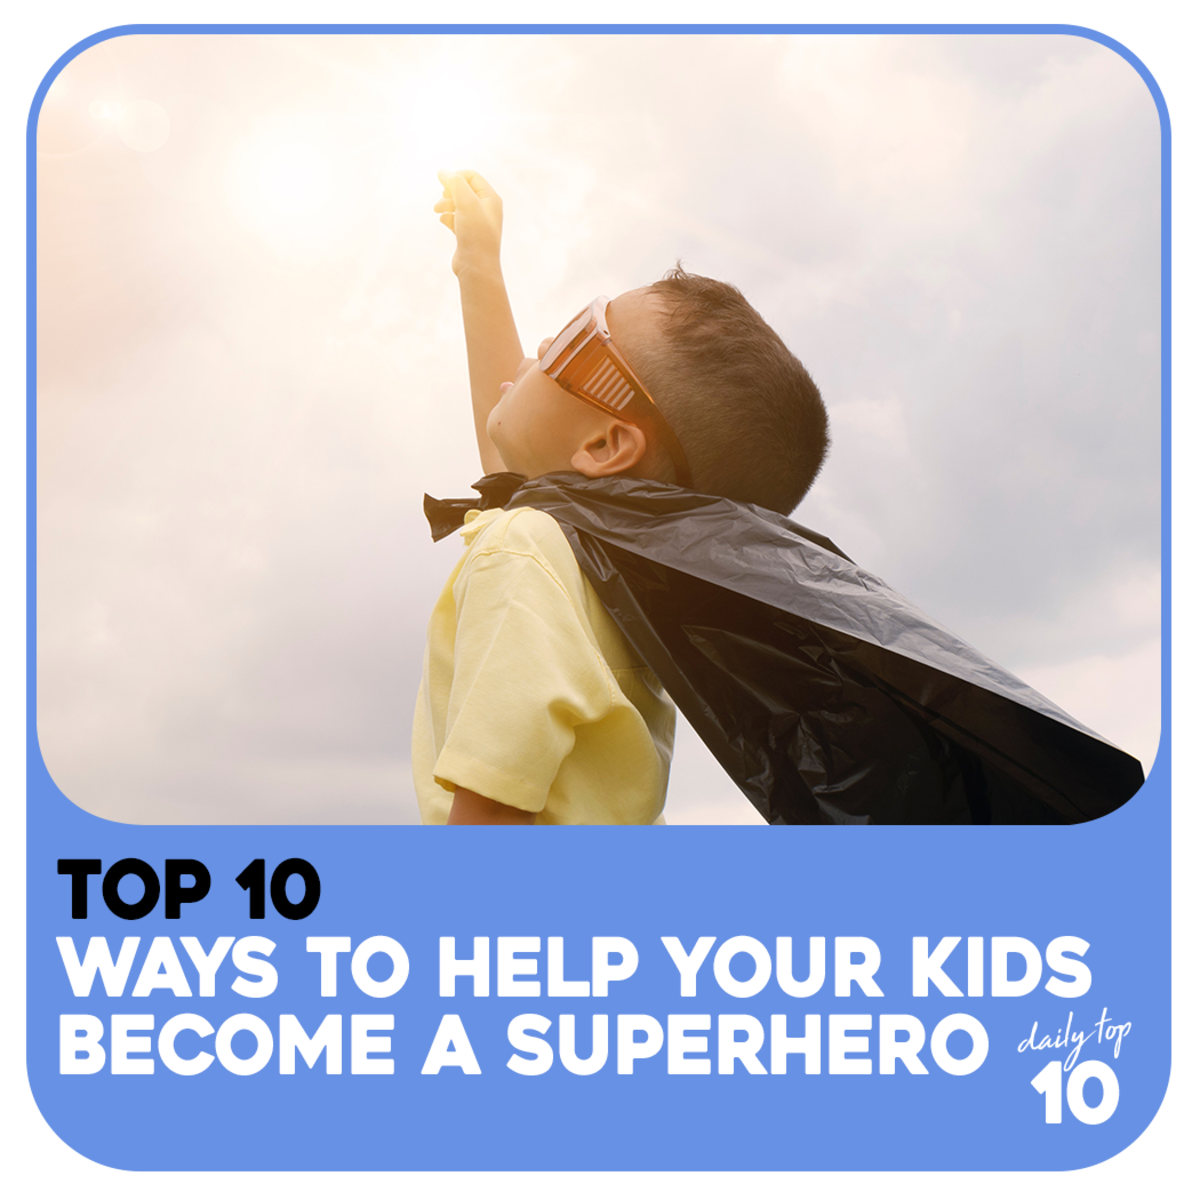 top-10-ways-on-how-to-be-a-superhero